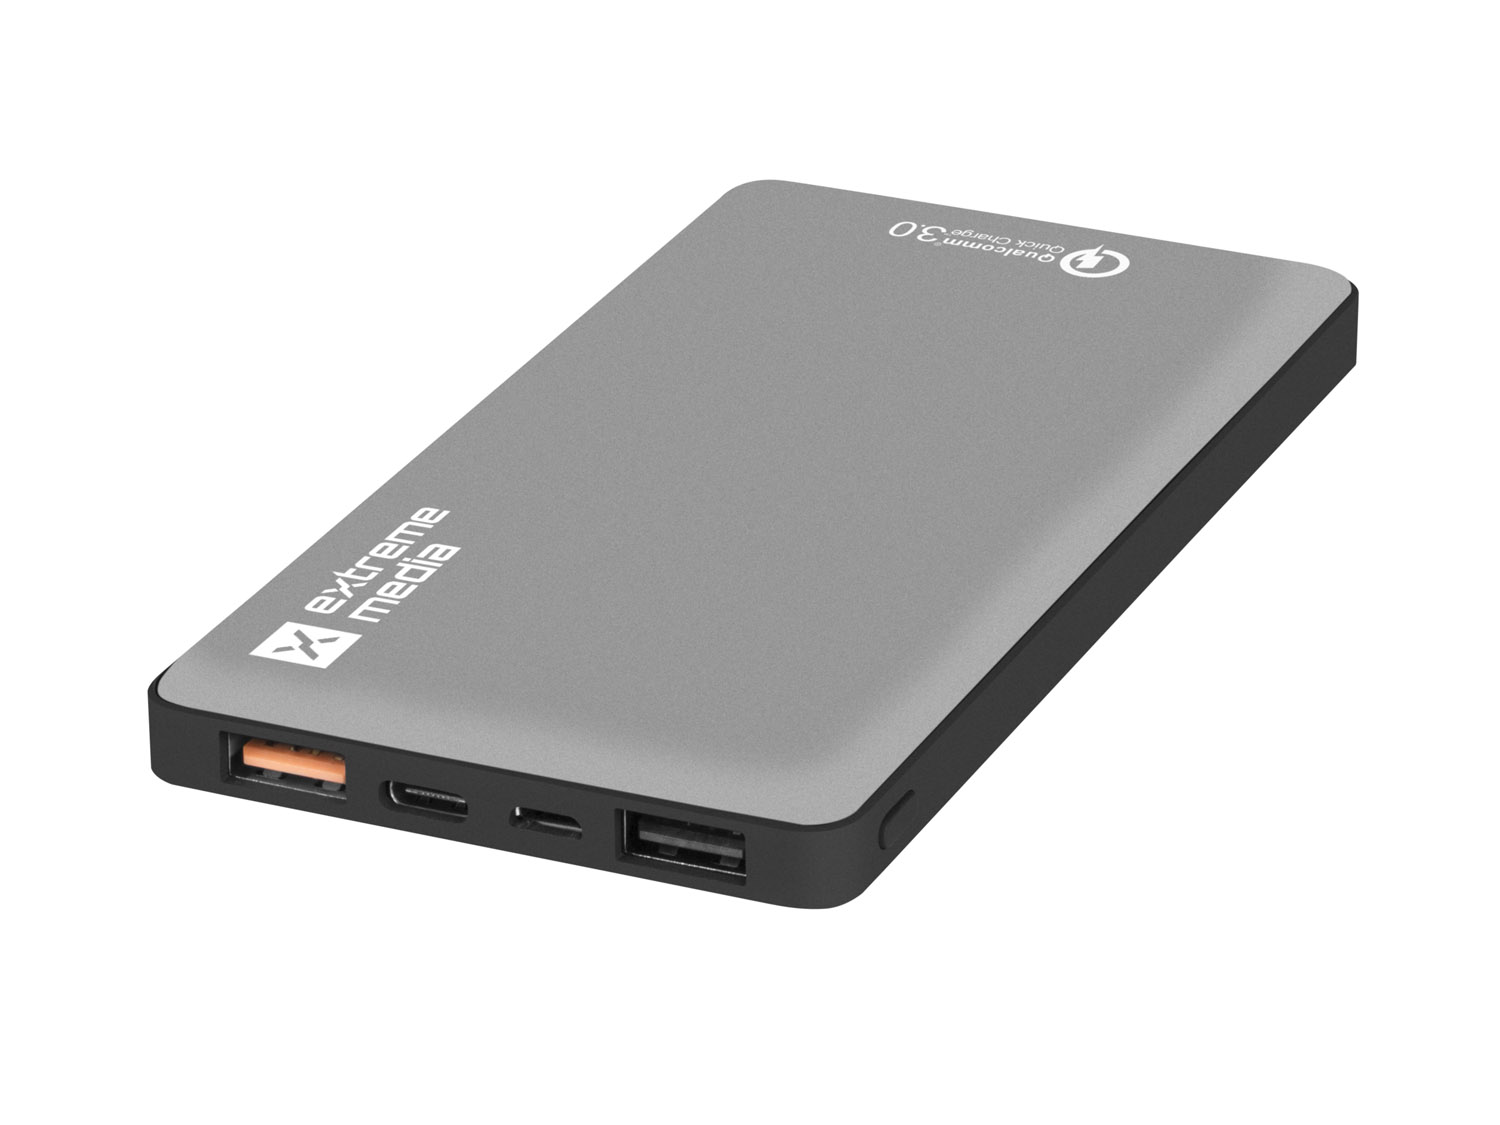 EXTREME MEDIA POWER BANK QUICK CHARGE 3.0 GREY 10000MAH